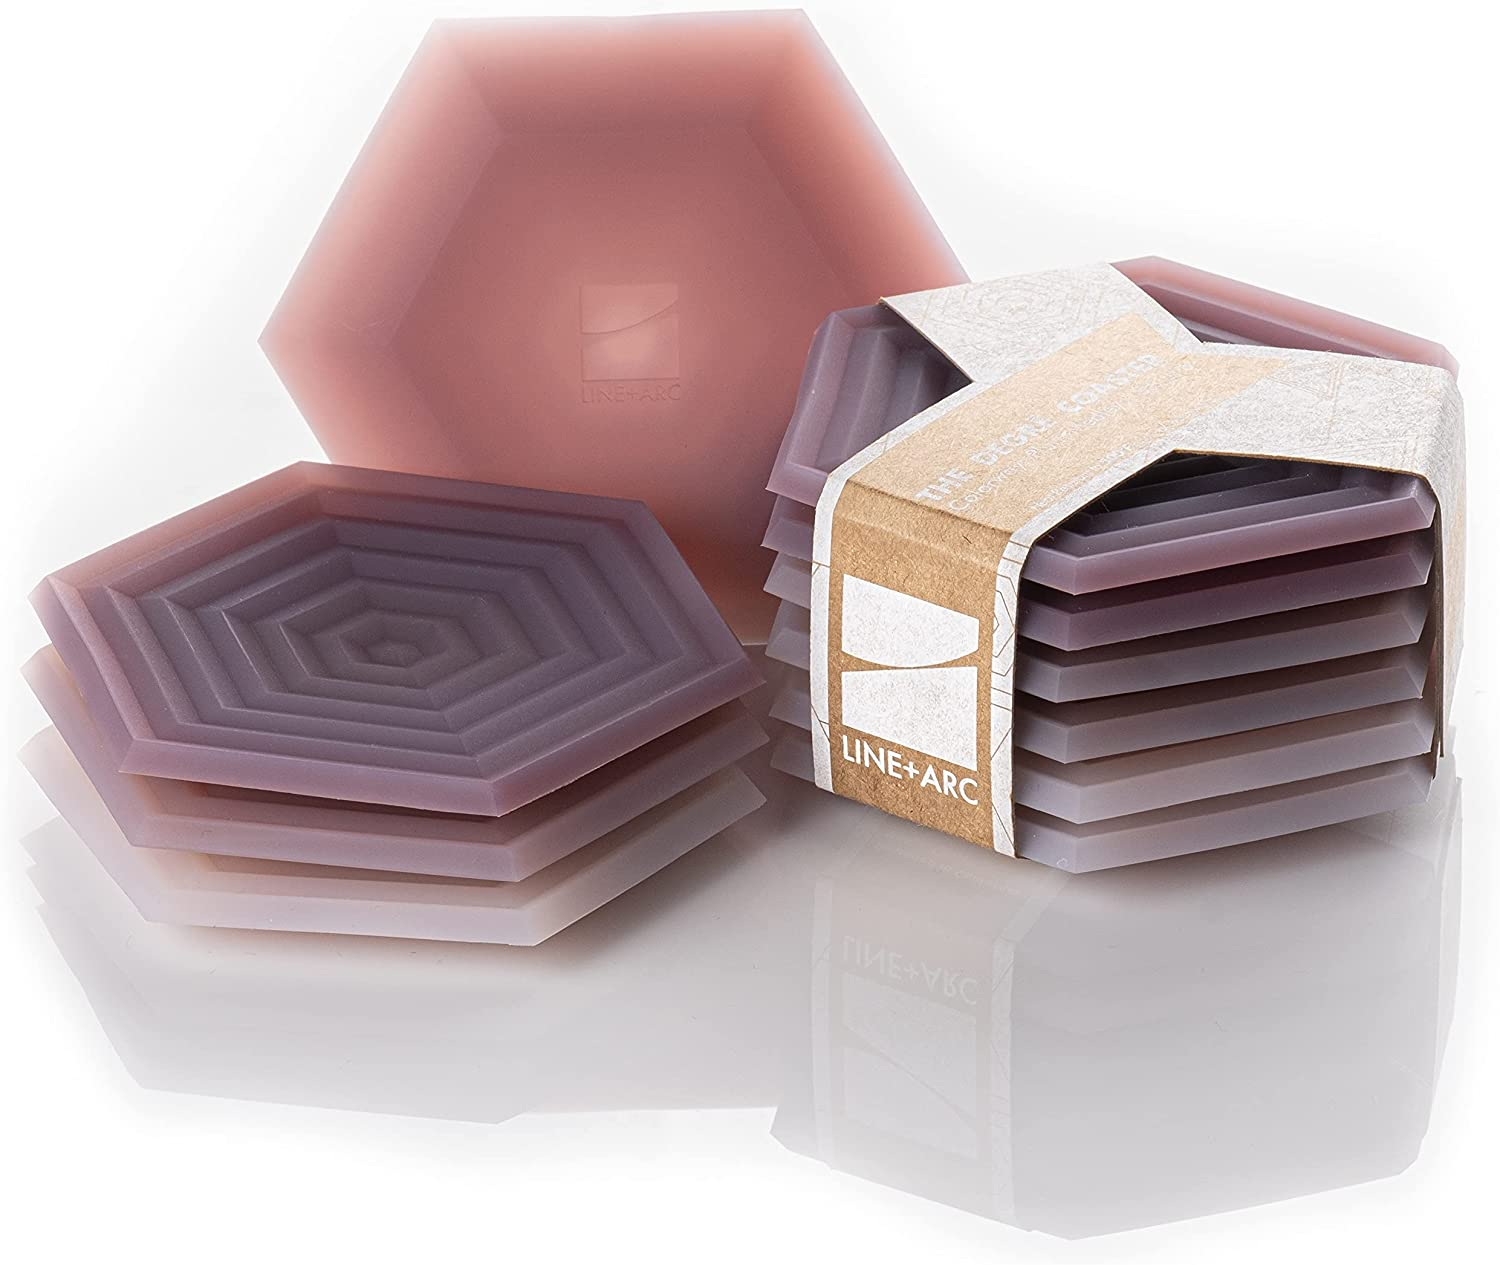 Set of 6 Degrē Coasters (Plum Medley) by LINE+ARC. 10mm Thick, Dishwasher Safe, Stain-Resistant, Outdoor, Coffee Table, Silicone, Modern, Hexagon, Mid Century, Cup, Drink, Non-Absorbent, Housewarming